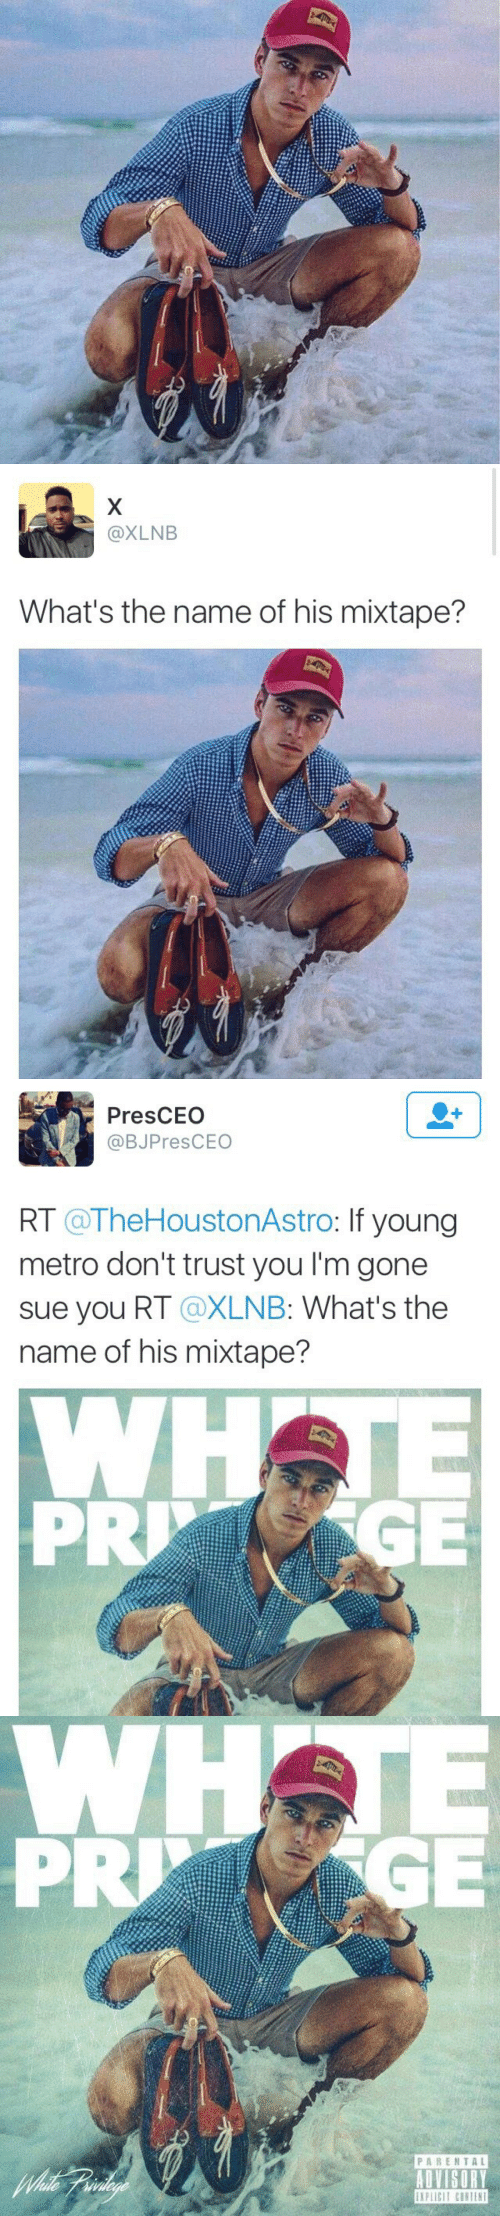 dont trust you: @XLNB  What's the name of his mixtape?   PresCEO  @BJPresCEO  RT @TheHoustonAstro: If young  metro don't trust you I'm gone  sue you RT @XLNB: What's the  name of his mixtape?  PRGE   PARENTAL